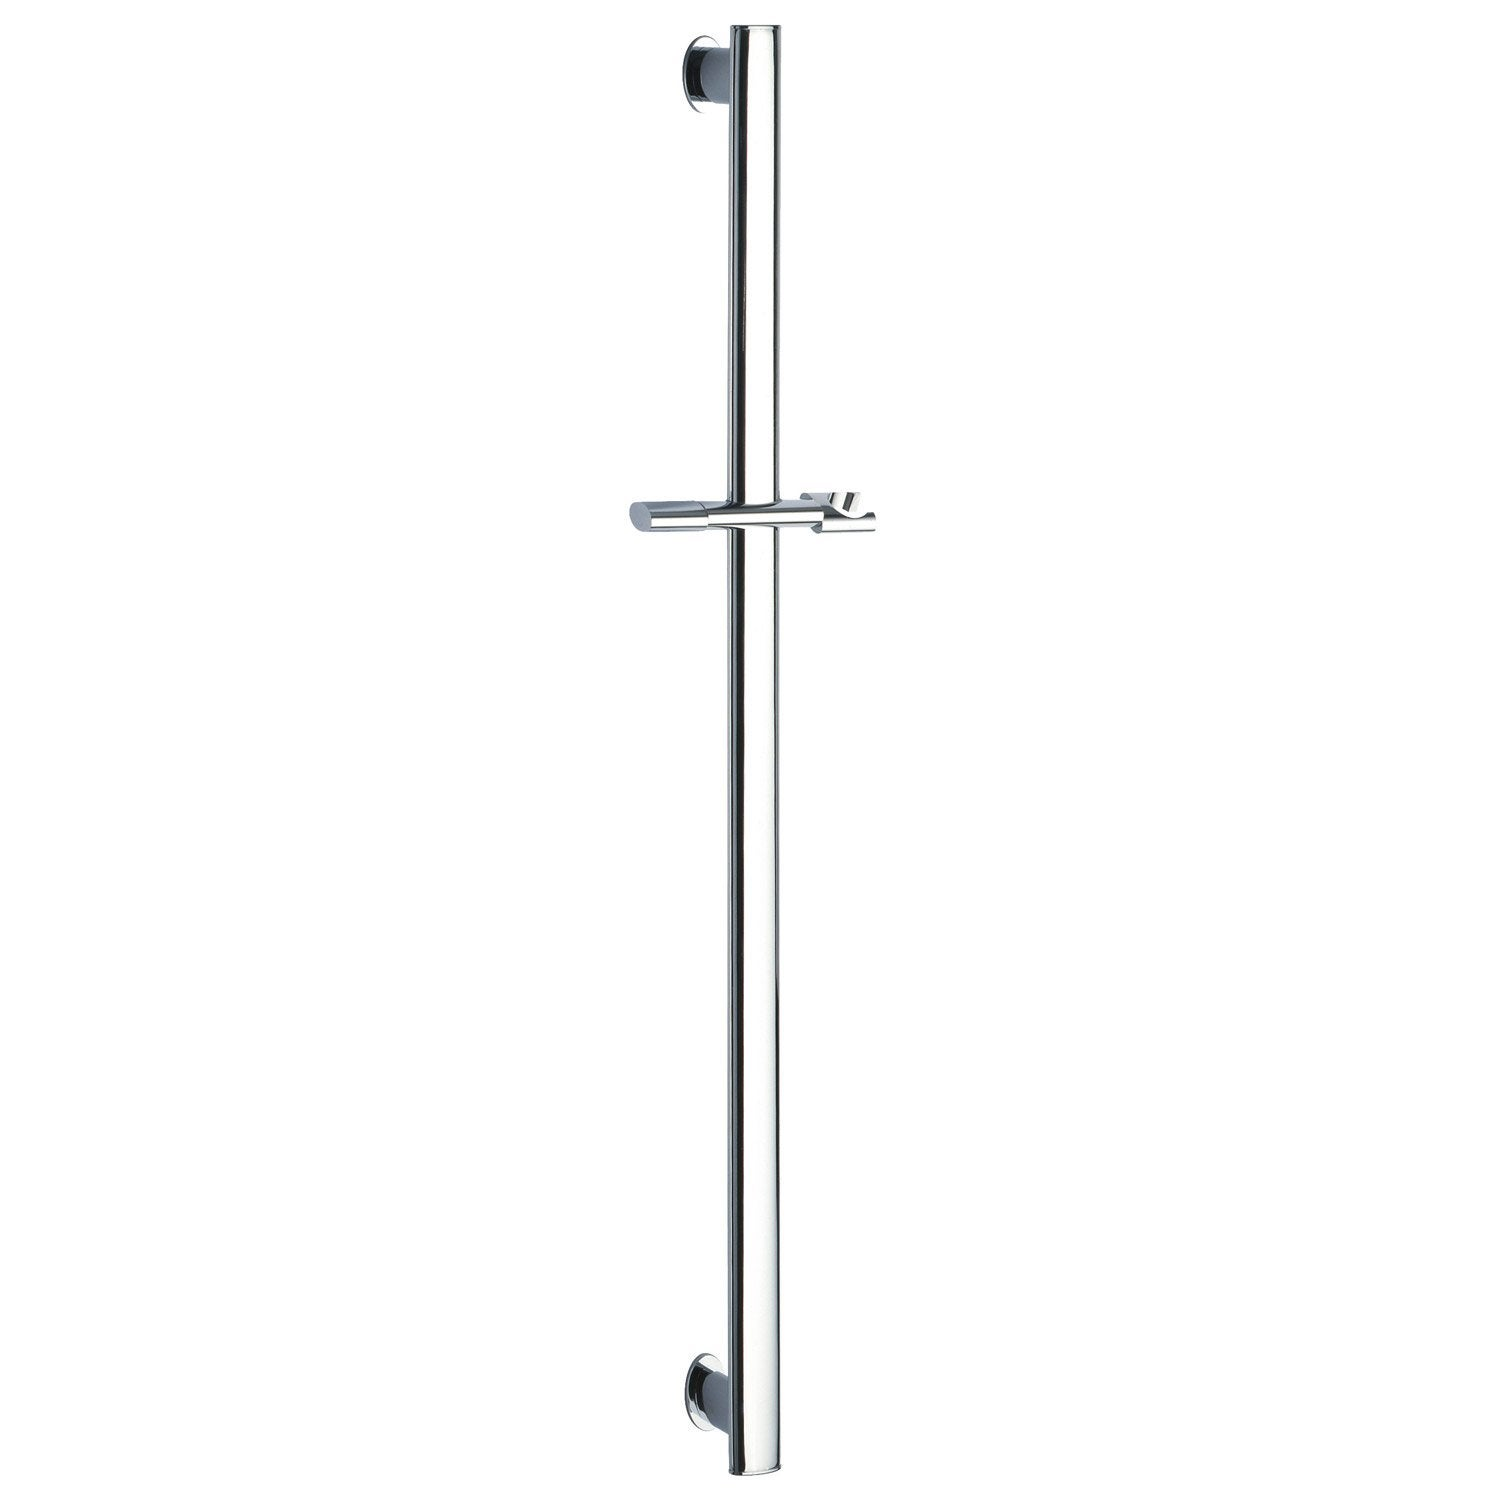 Barre de douche chrome eggy leroy merlin - Barre de douche leroy merlin ...